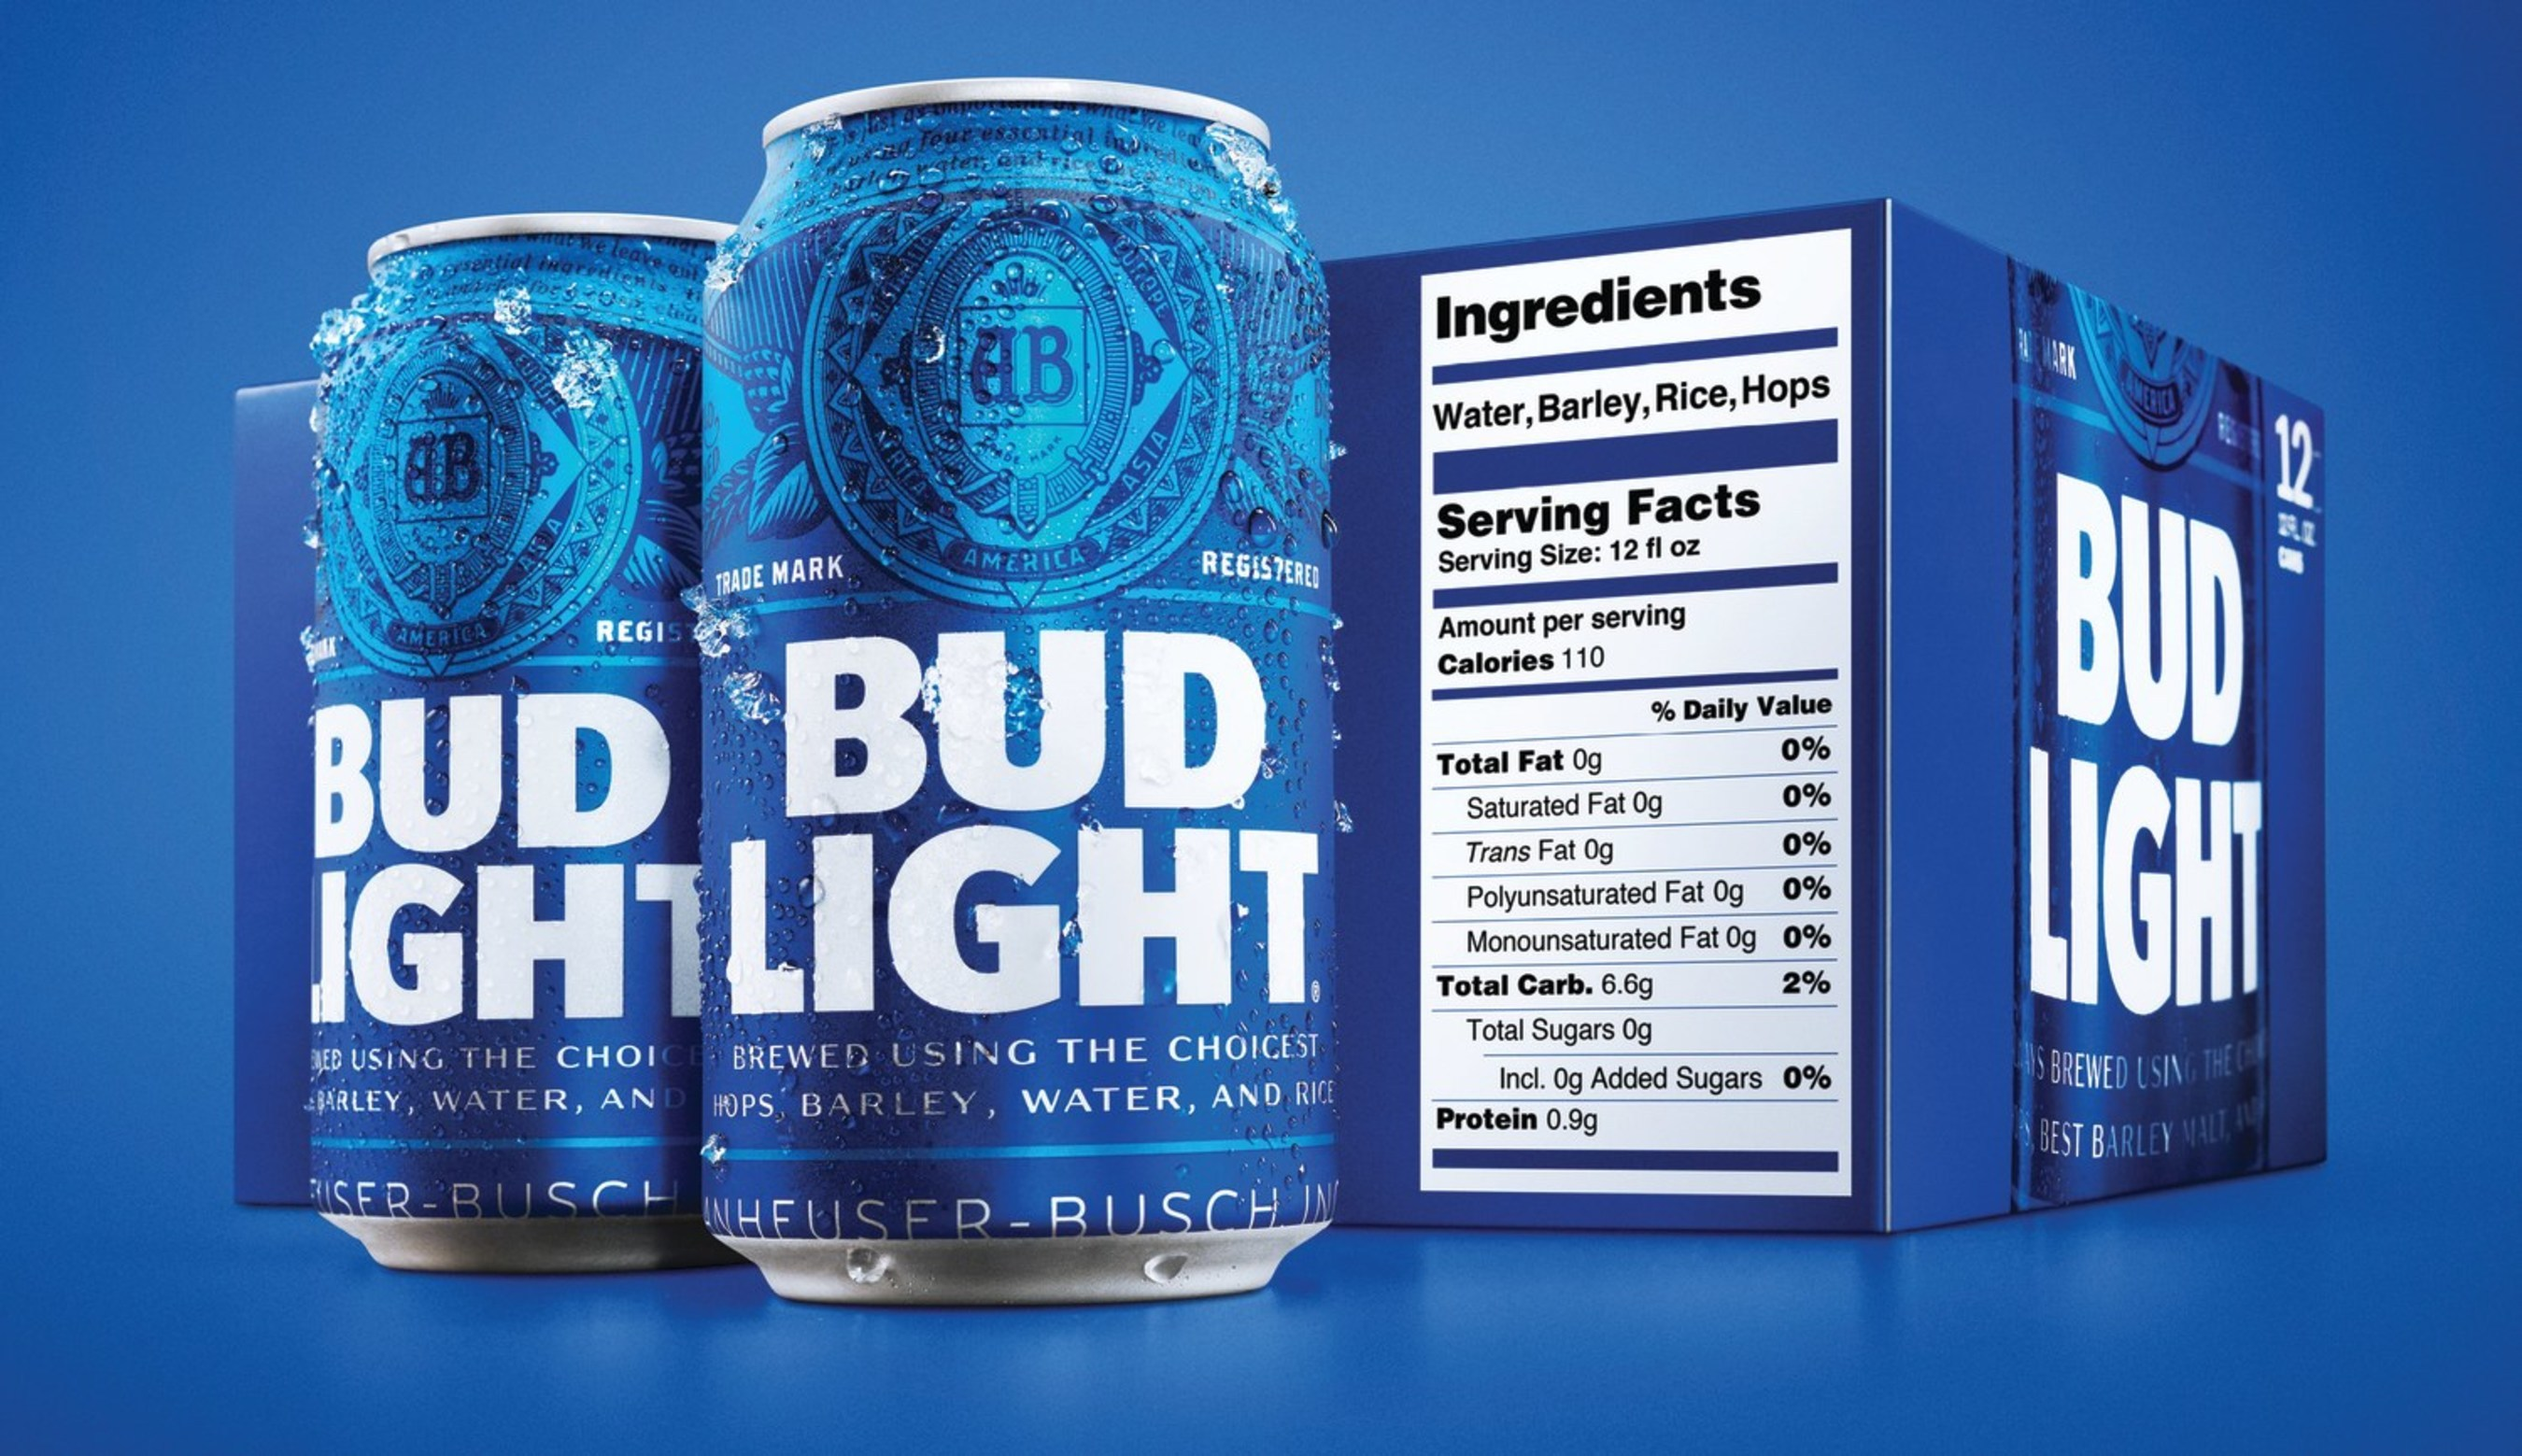 NEW YORK — Bud Light became the first beer in the United States to add a comprehensive on-pack serving facts and ingredient label, with the unveiling of a ...